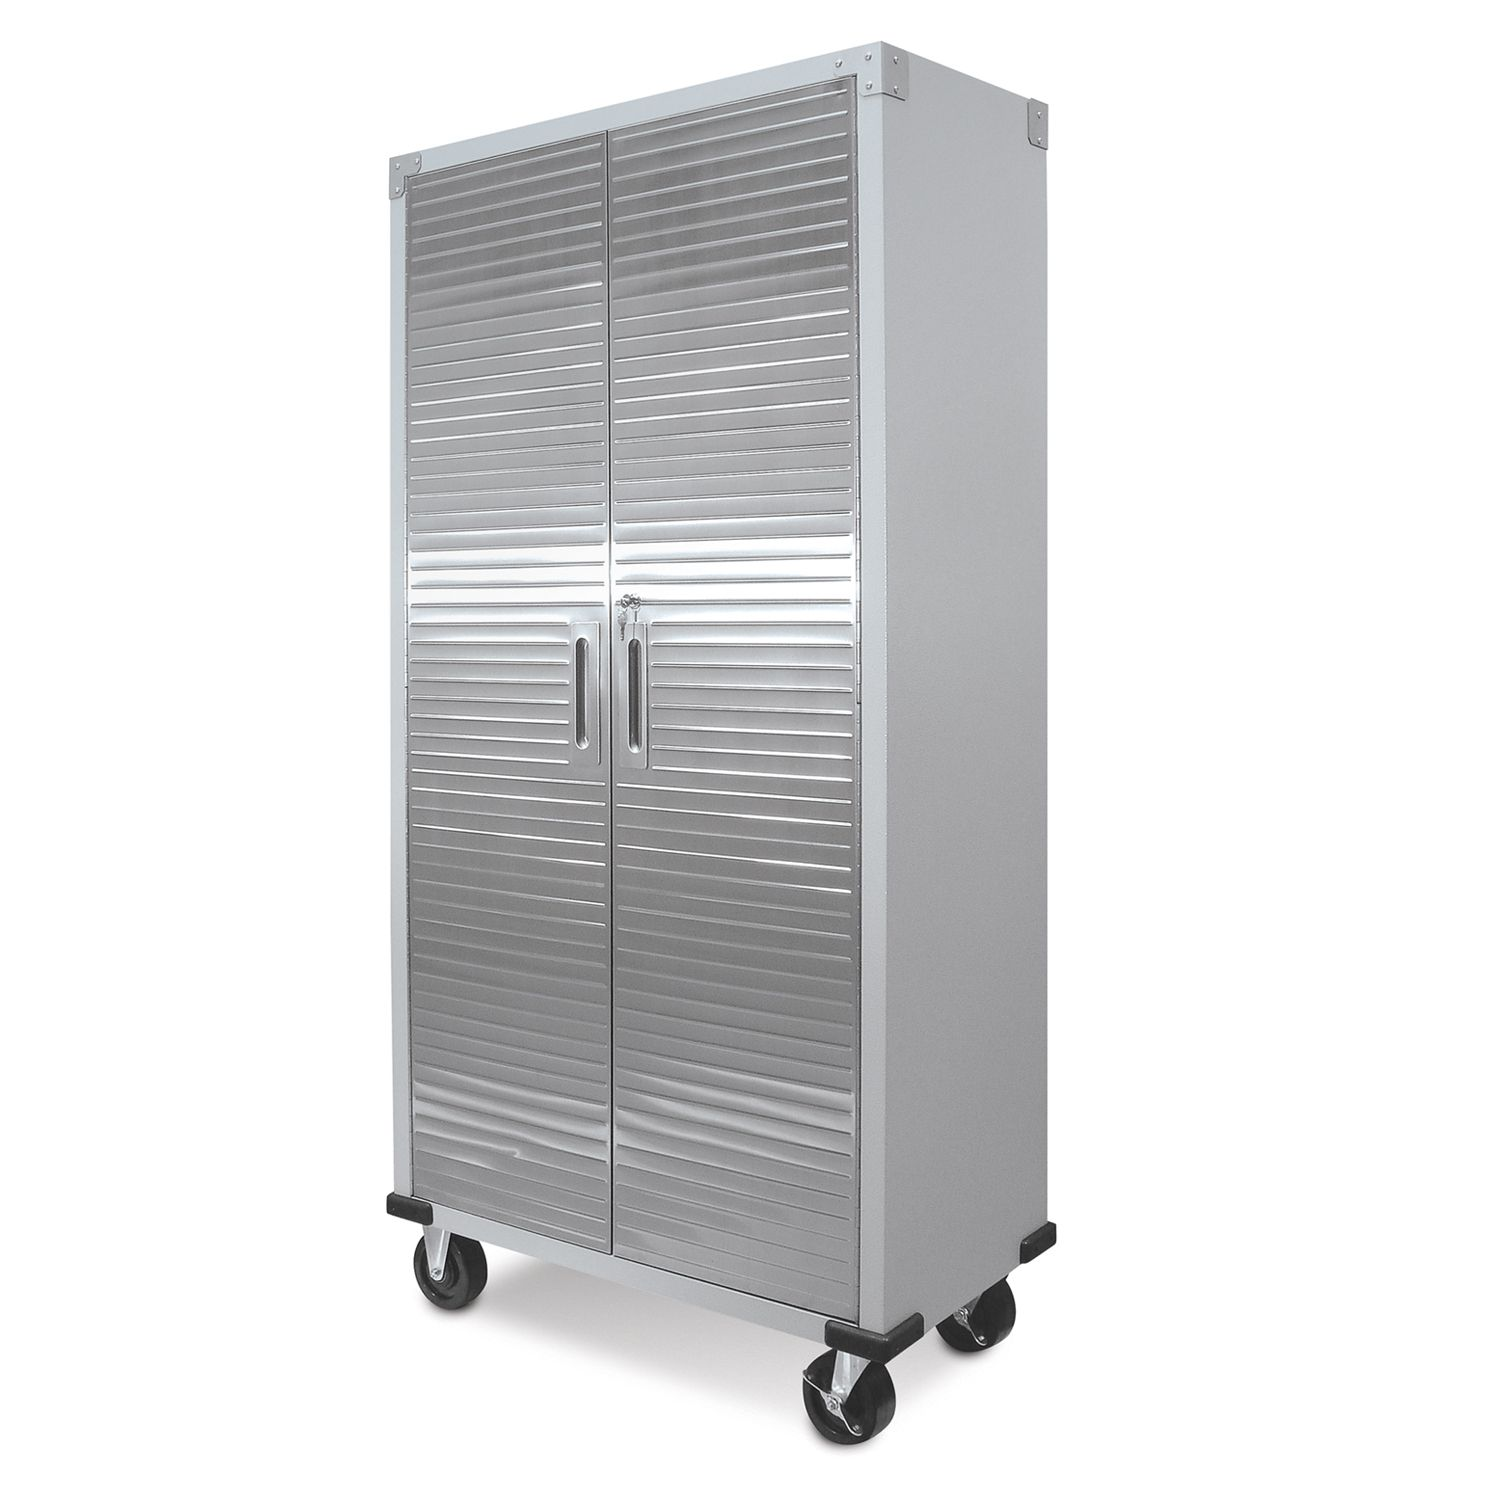 Ultrahd Steel Heavy Duty Storage Cabinet By Seville Clics